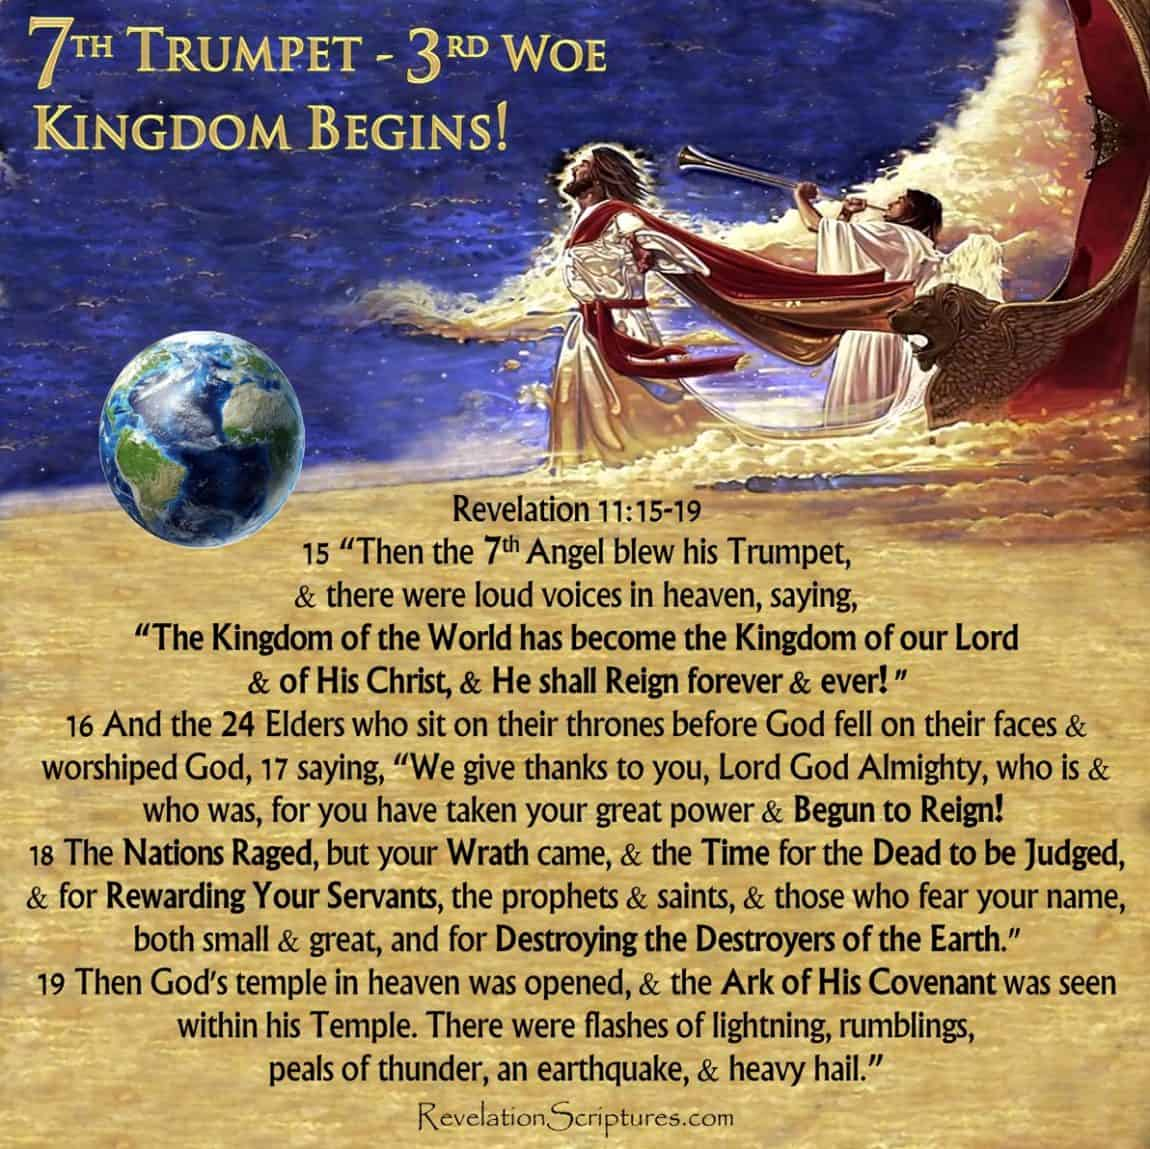 Seventh Trumpet,seventh Trumpet of revelation,God's Wrath,end world,apocalypse,7th Trumpet,3rd woe,Trumpet 7,Third Woe,God's Temple,Heaven,Ark,Ark of the Covenant,Earthquake,Great Hail,Hail,Heavy Hail,Begun to Reign,Nations Angry,Wrath,Wrath has come,Reward,Judg Dead,time to reward,time to judge the dead,Book of Revelation,Revelation Chapter 11,Apocalypse,scriptural interpretation,biblical interpretation,food in due season,kingdom of world,kingdom of Christ,kingdom,birth of Kingdom,start of kingdom,destroy those ruining the earth,destroy the destroyers of the earth,7 bowls of Wrath,7 vials of Wrath,day of wrath,day of vengeance,day of the lord,revelation,saints,prophets,great and small,those who fear your name